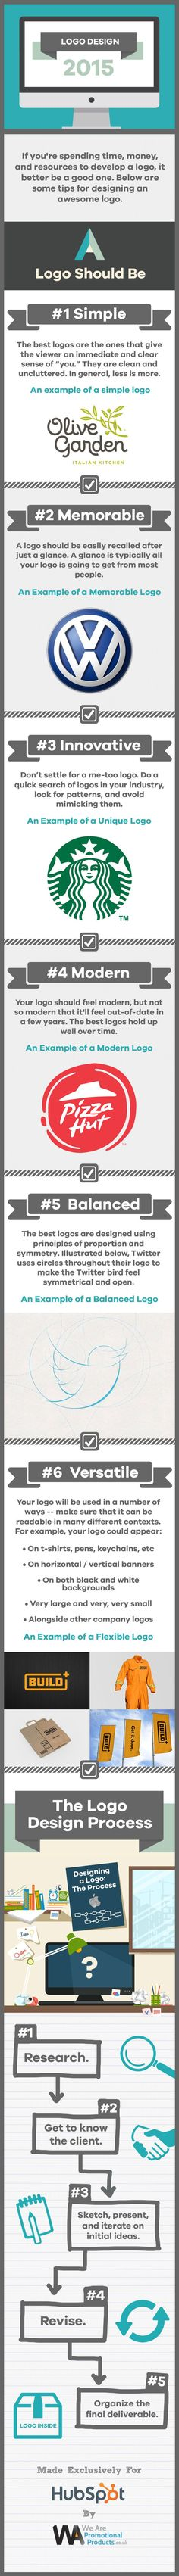 How to Create a Logo [Infographic], via @HubSpot